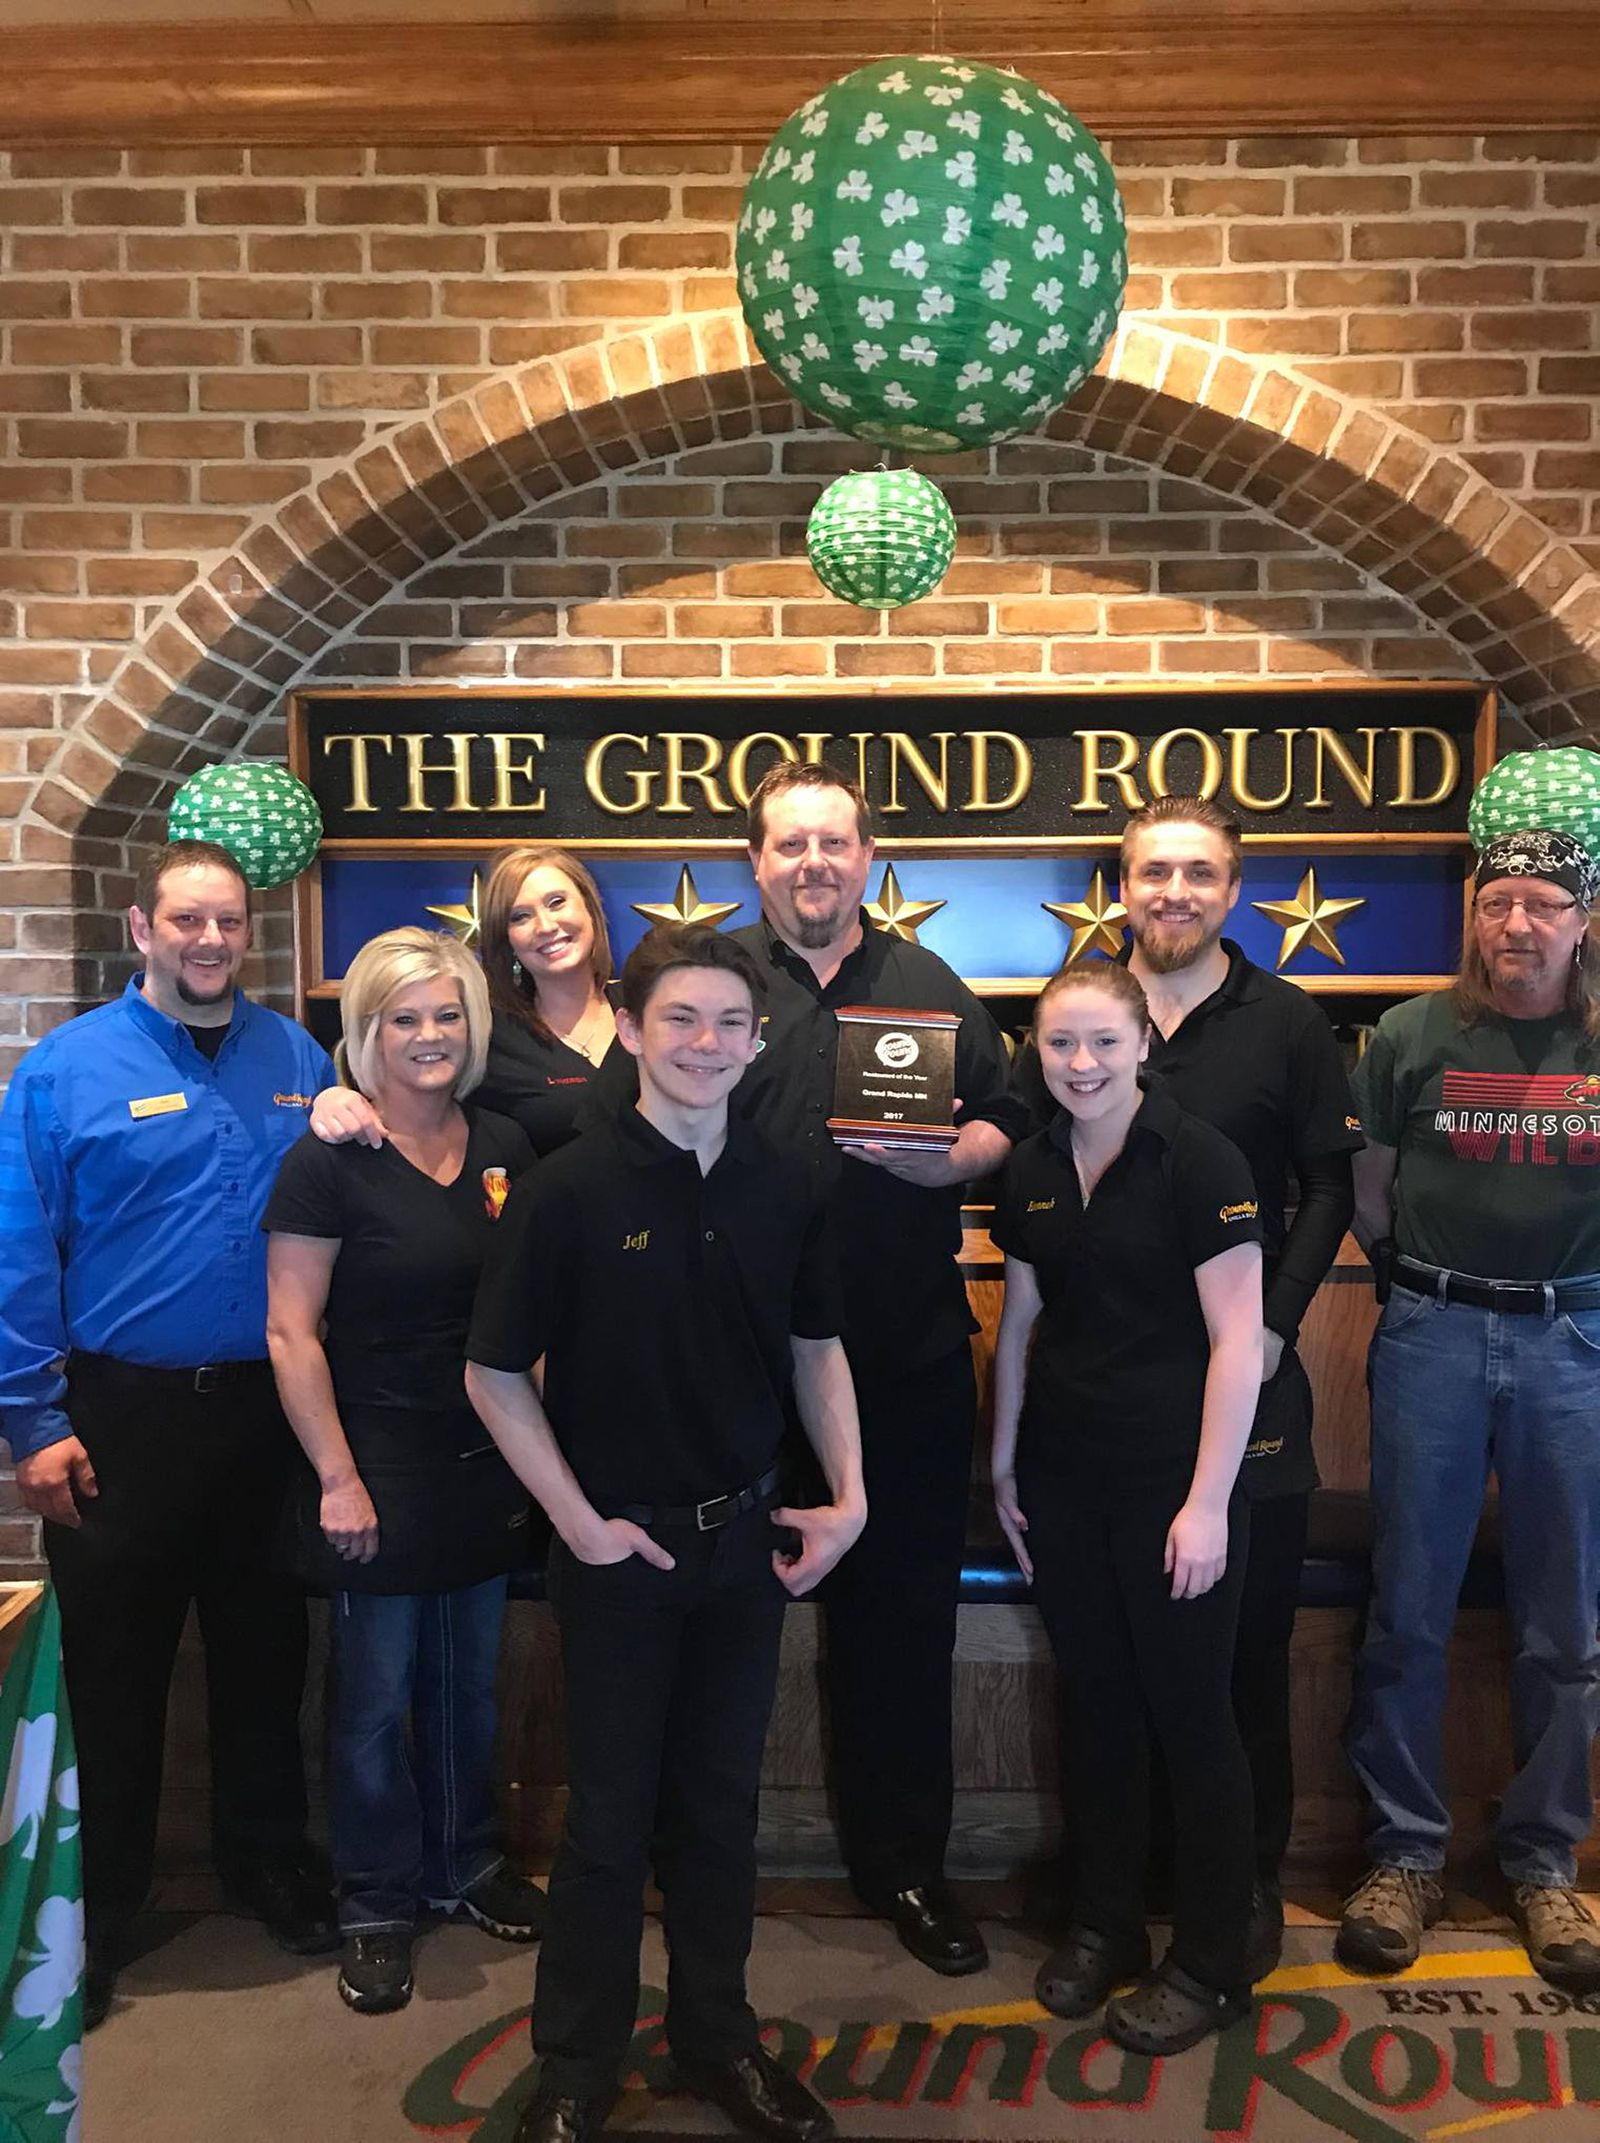 Ground Round Grill & Bar in Grand Rapids, MN receives national recognition as 2017 Restaurant of the Year, awarded by the Ground Round Chain!